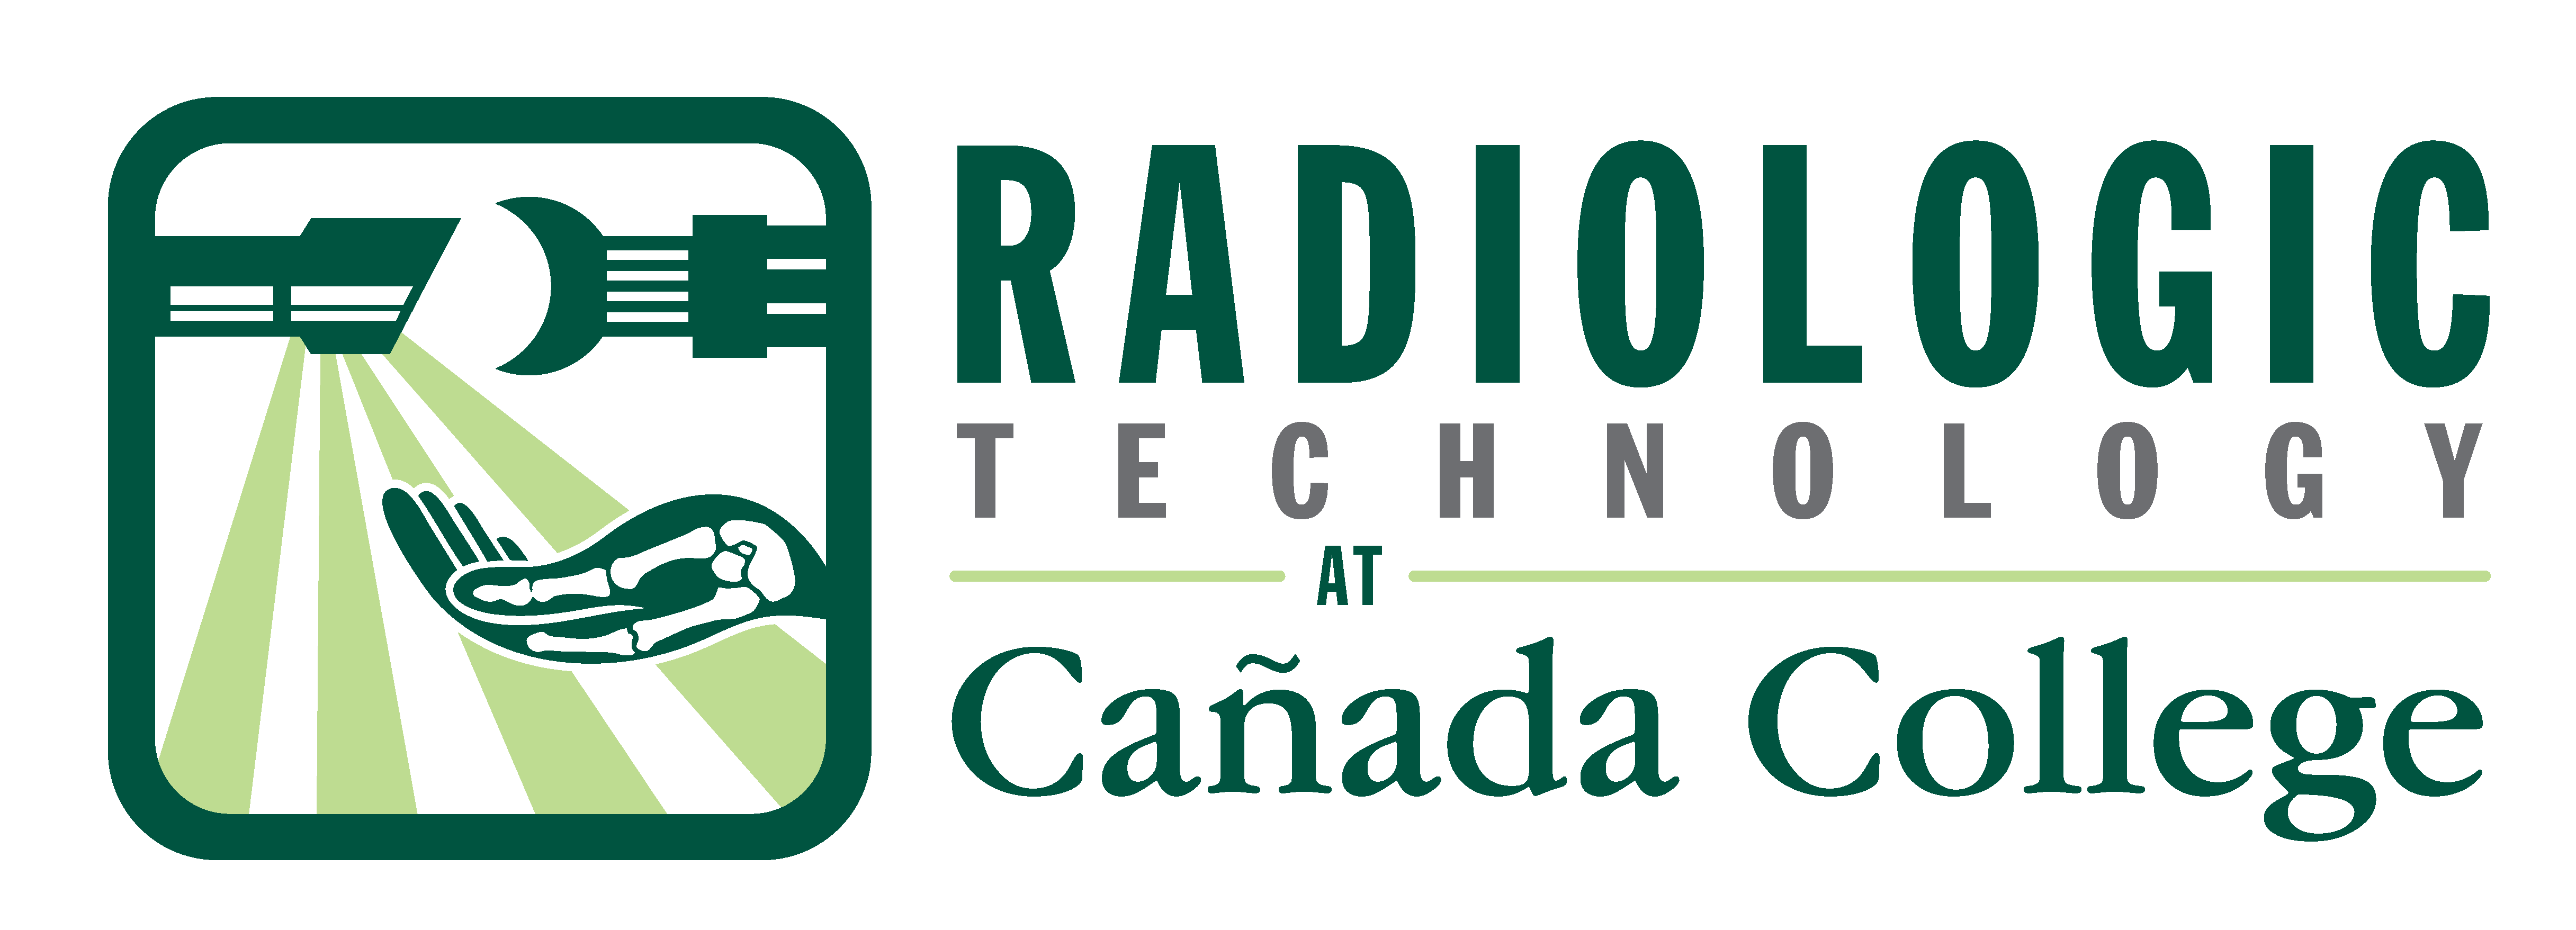 radiologic technology logo